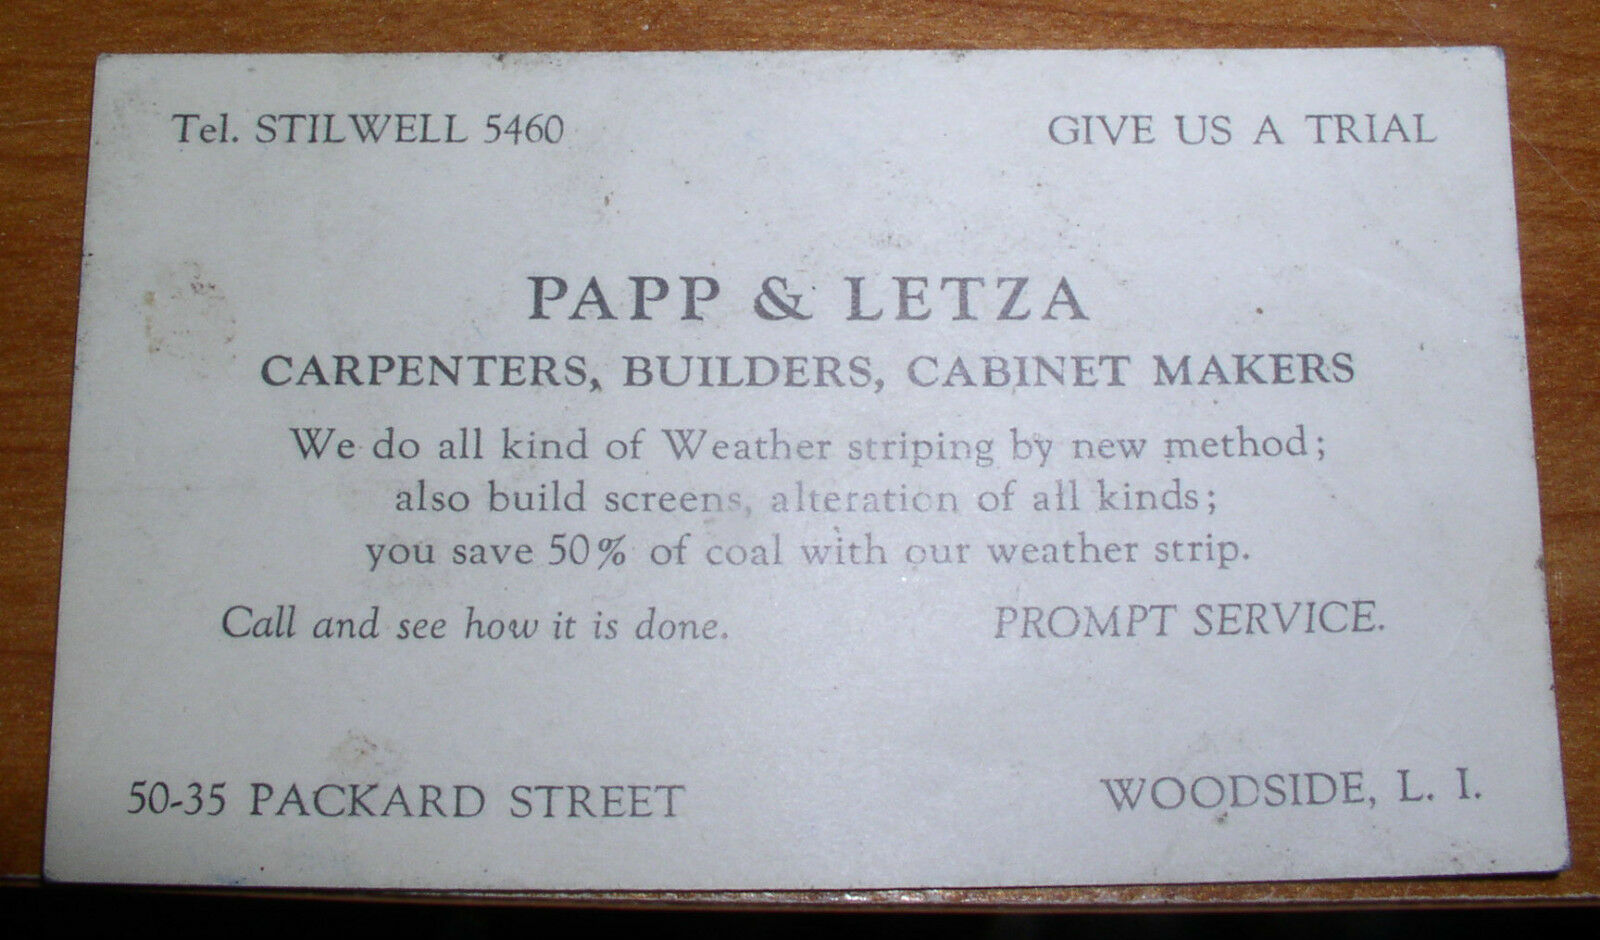 1950s business card papp letza italian carpenters woodside queens 1950s business card papp letza italian carpenters woodside queens new york ny 1 of 3only 1 available reheart Images